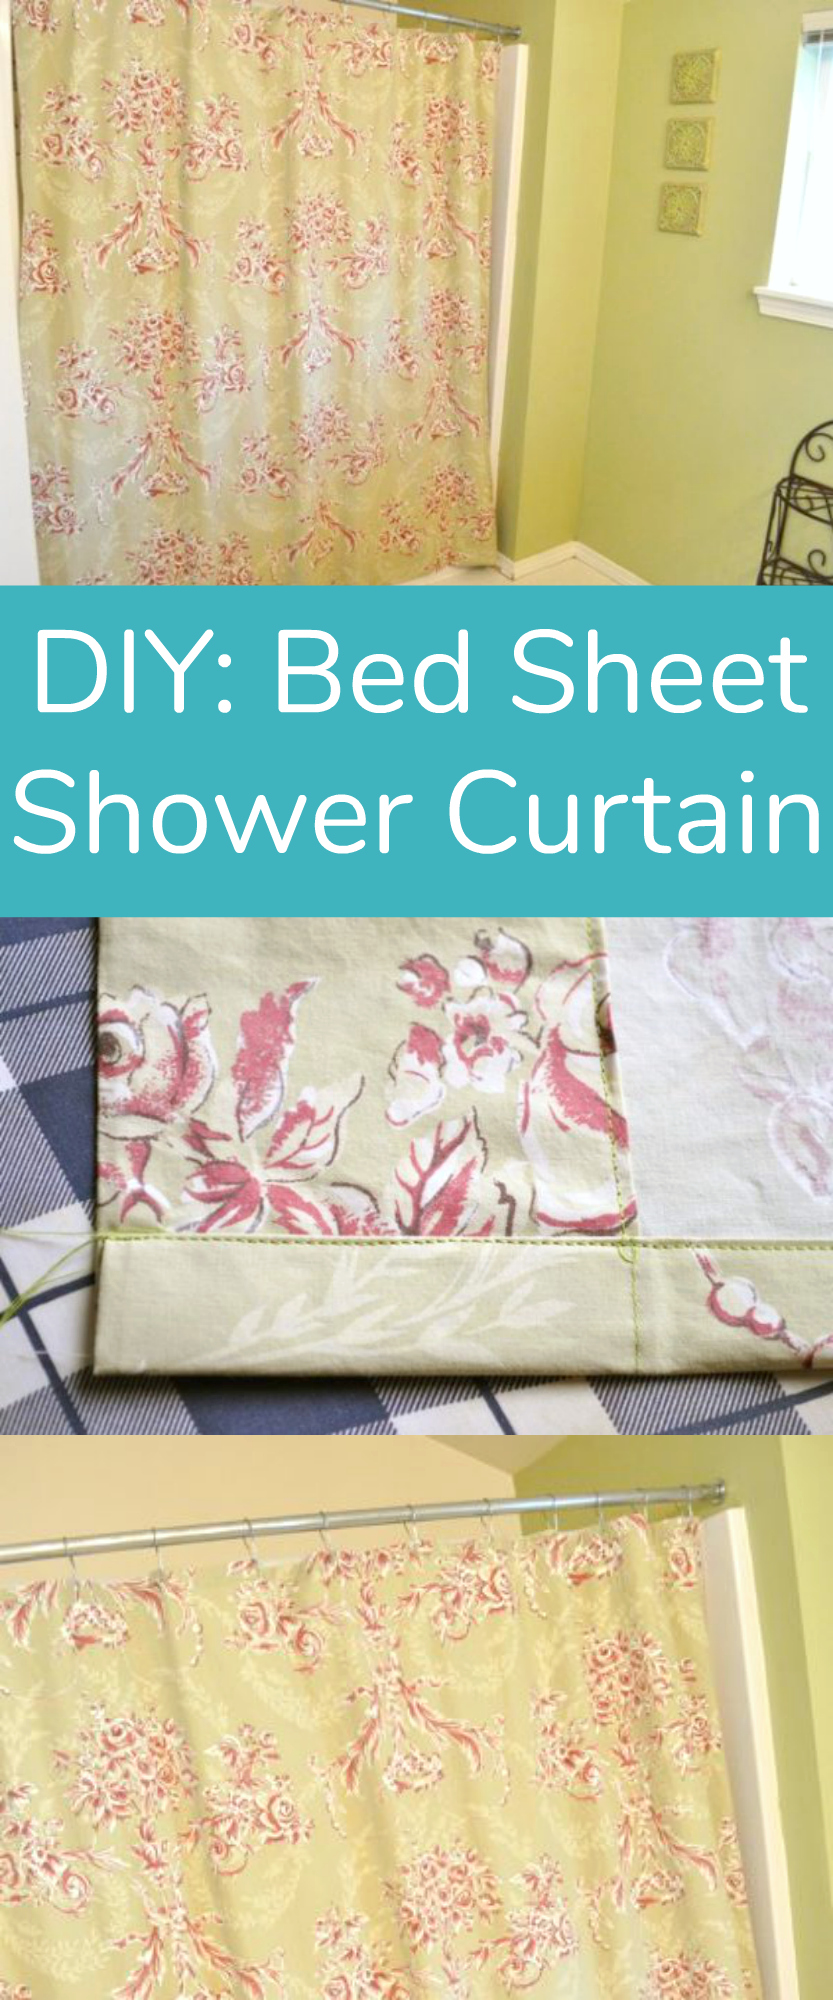 DIY: Bed Sheet Shower Curtain Sewing Project